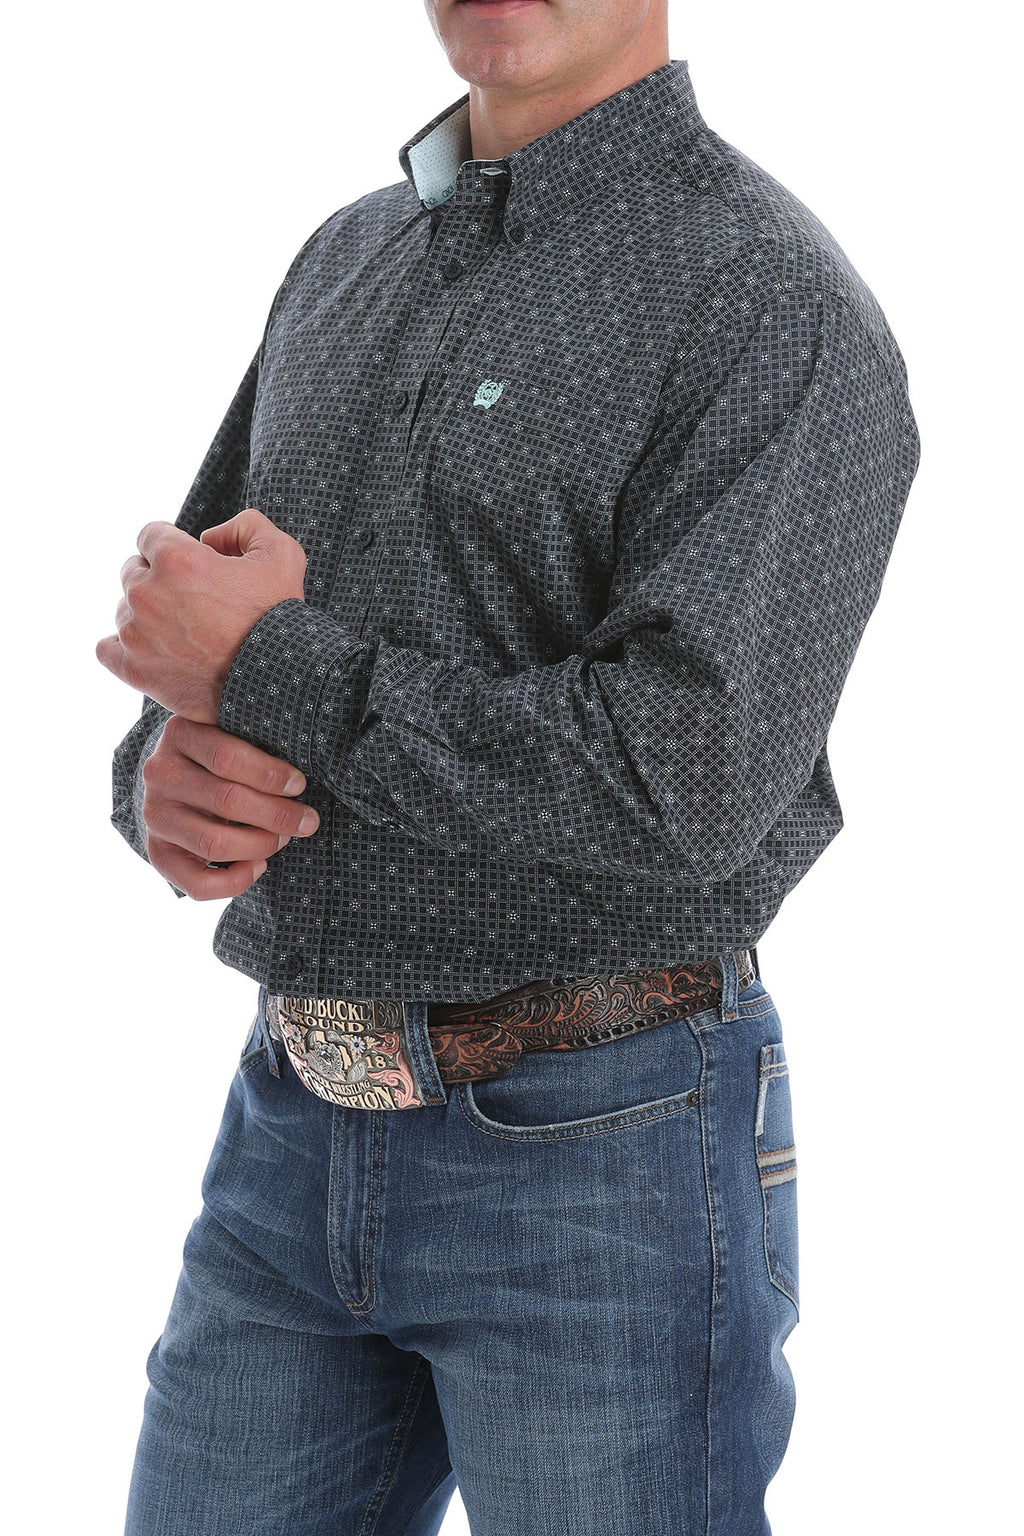 CINCH Men's Dark Navy Pattern Button Down - The Tillie Rose Boutique